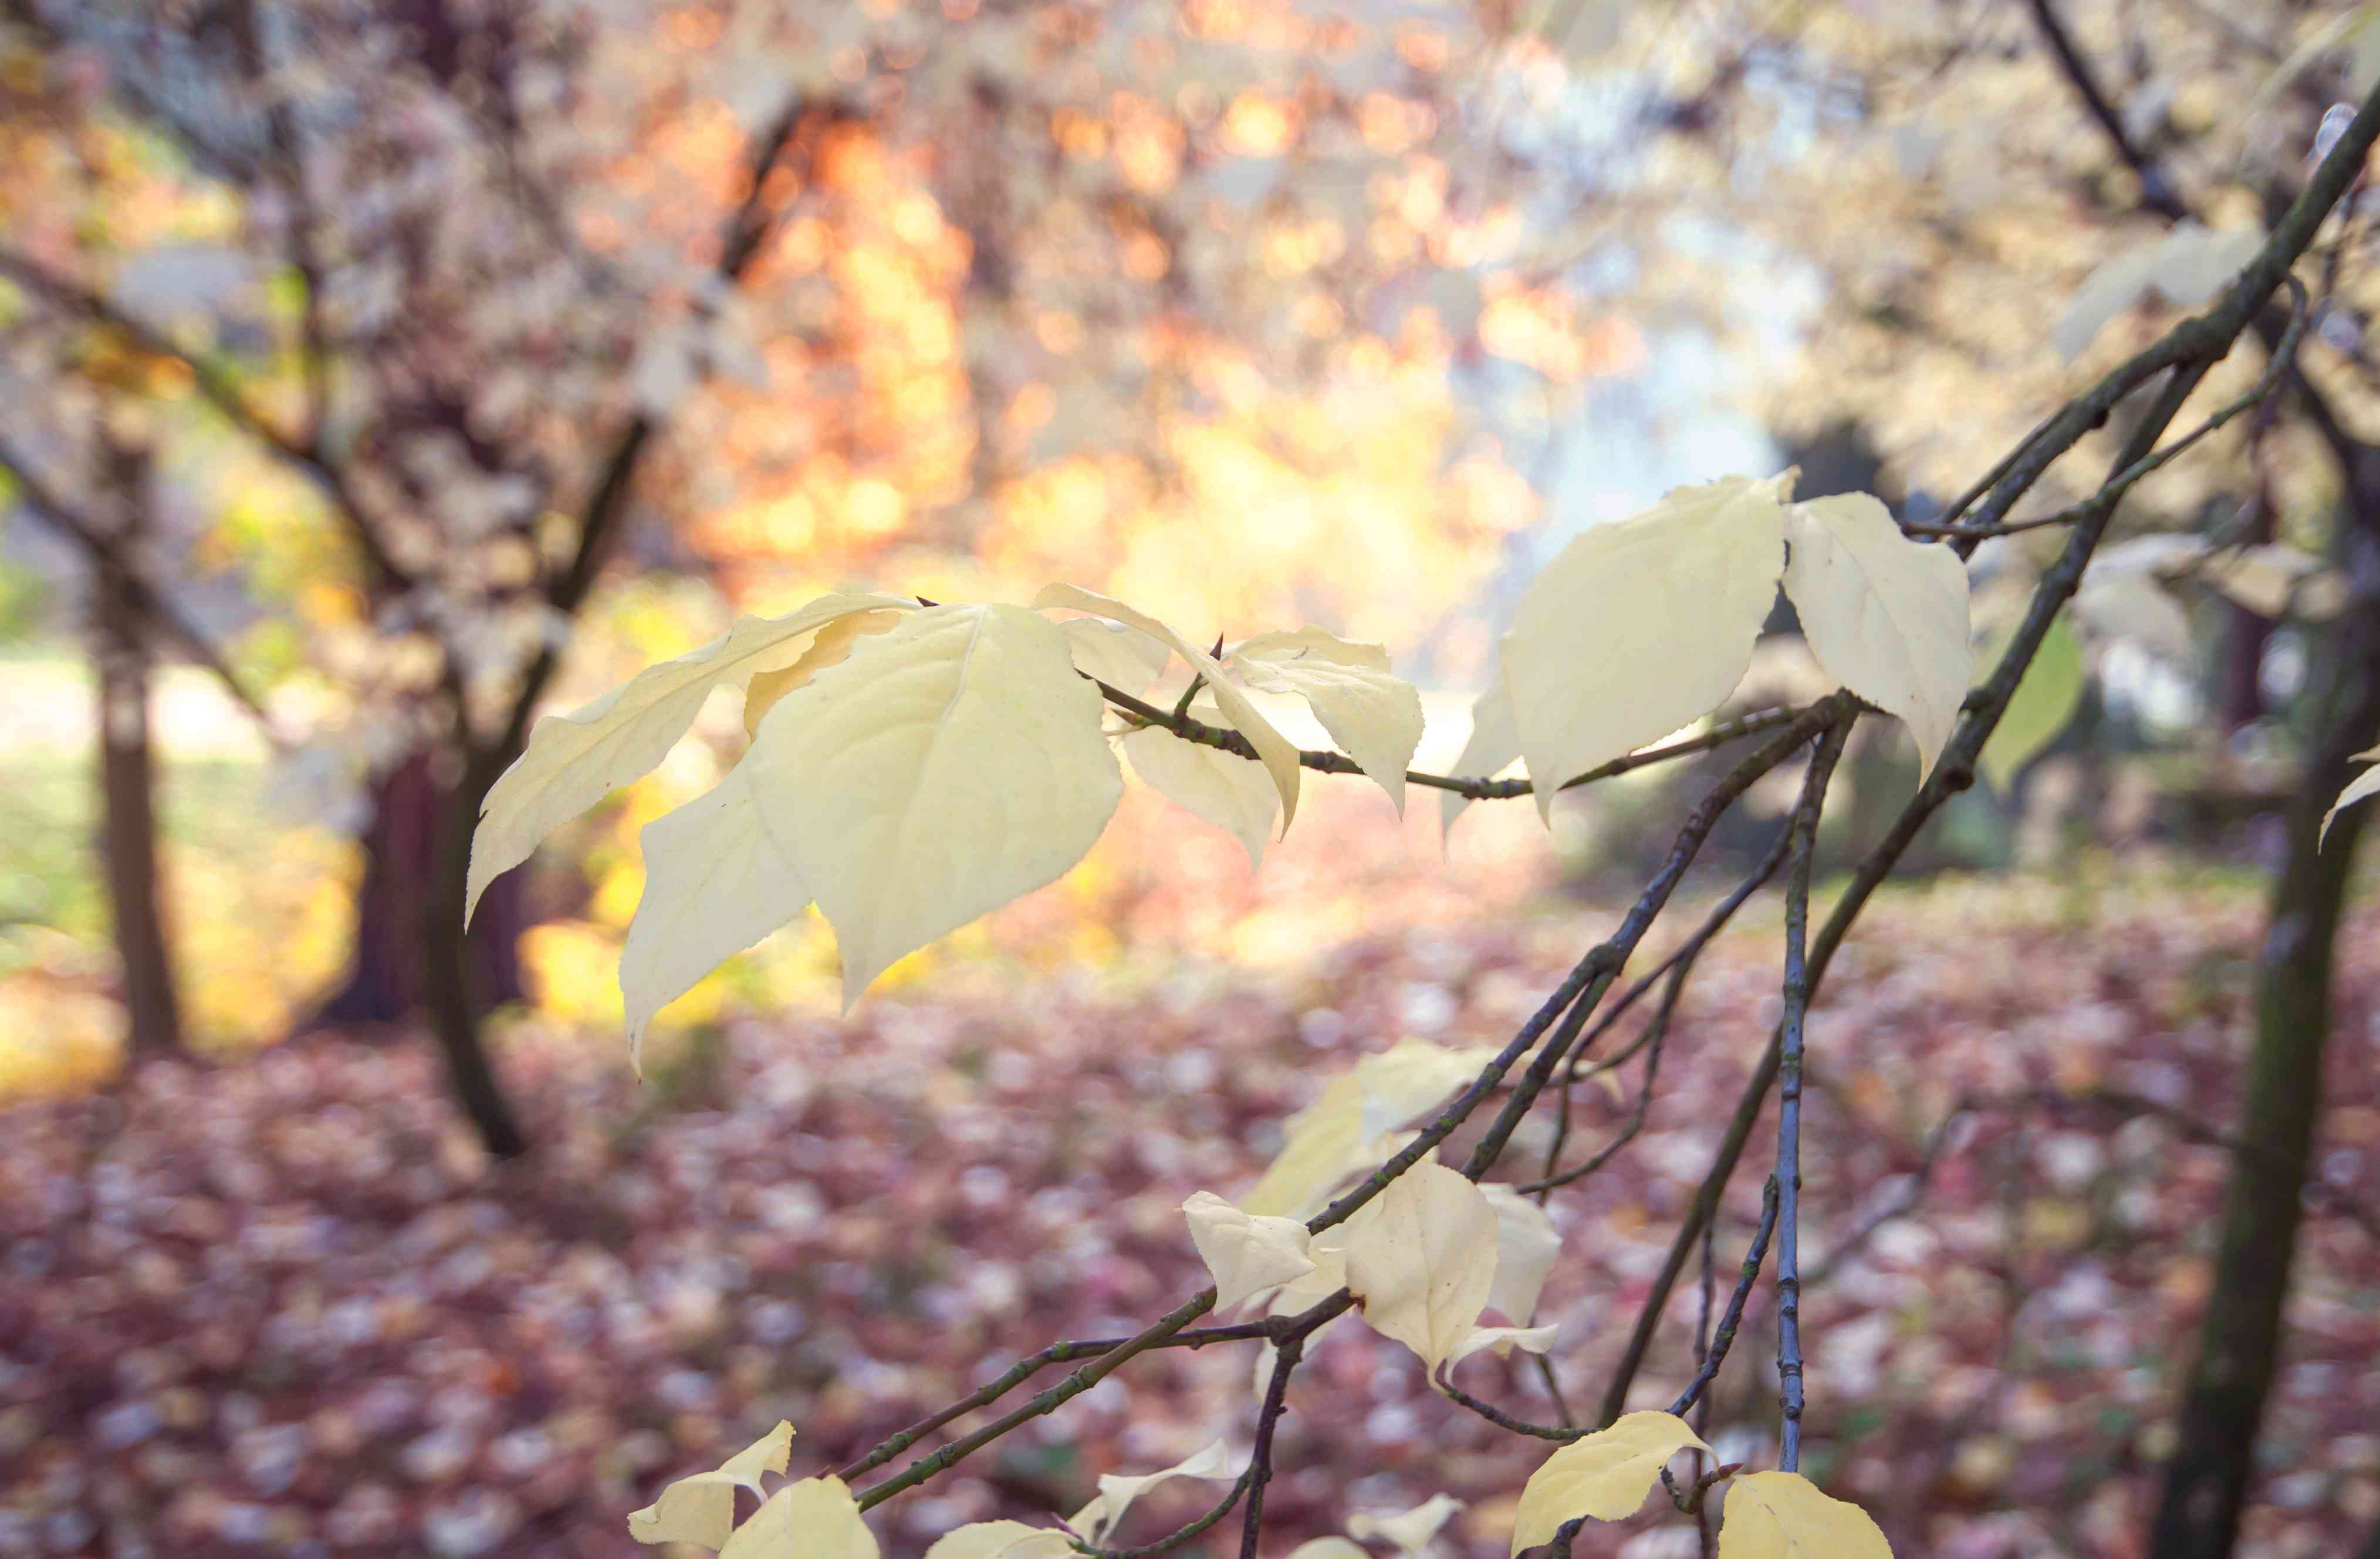 European spindle tree branch with several yellow leaves on branch